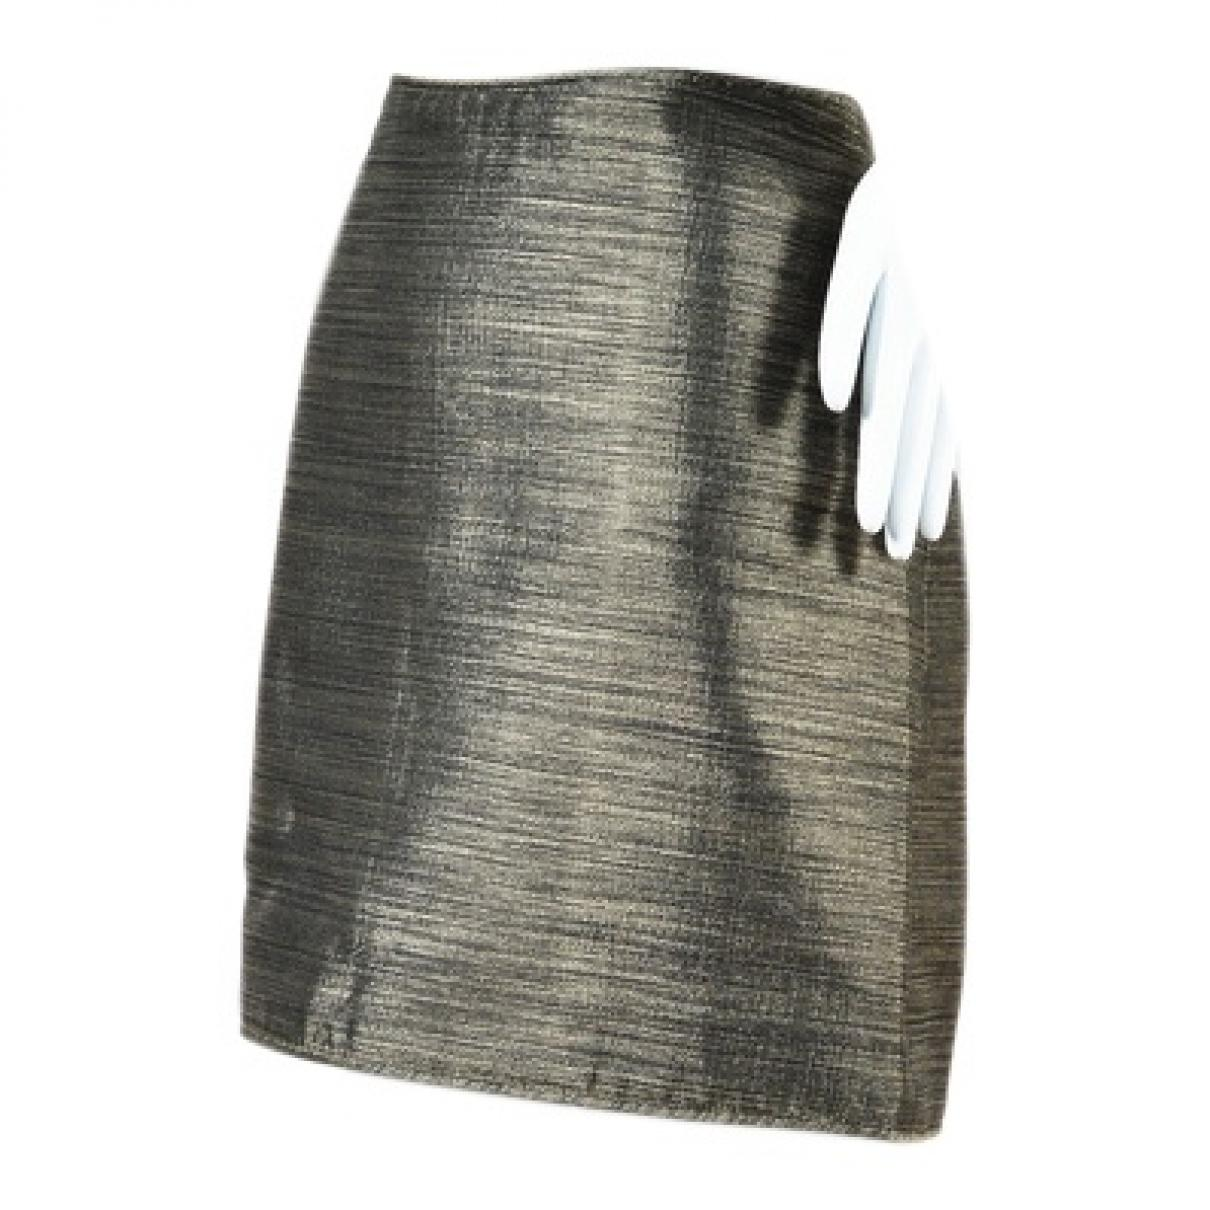 a84daf1d18 Burberry. Women's Metallic Polyester Skirt. $211 From Vestiaire Collective